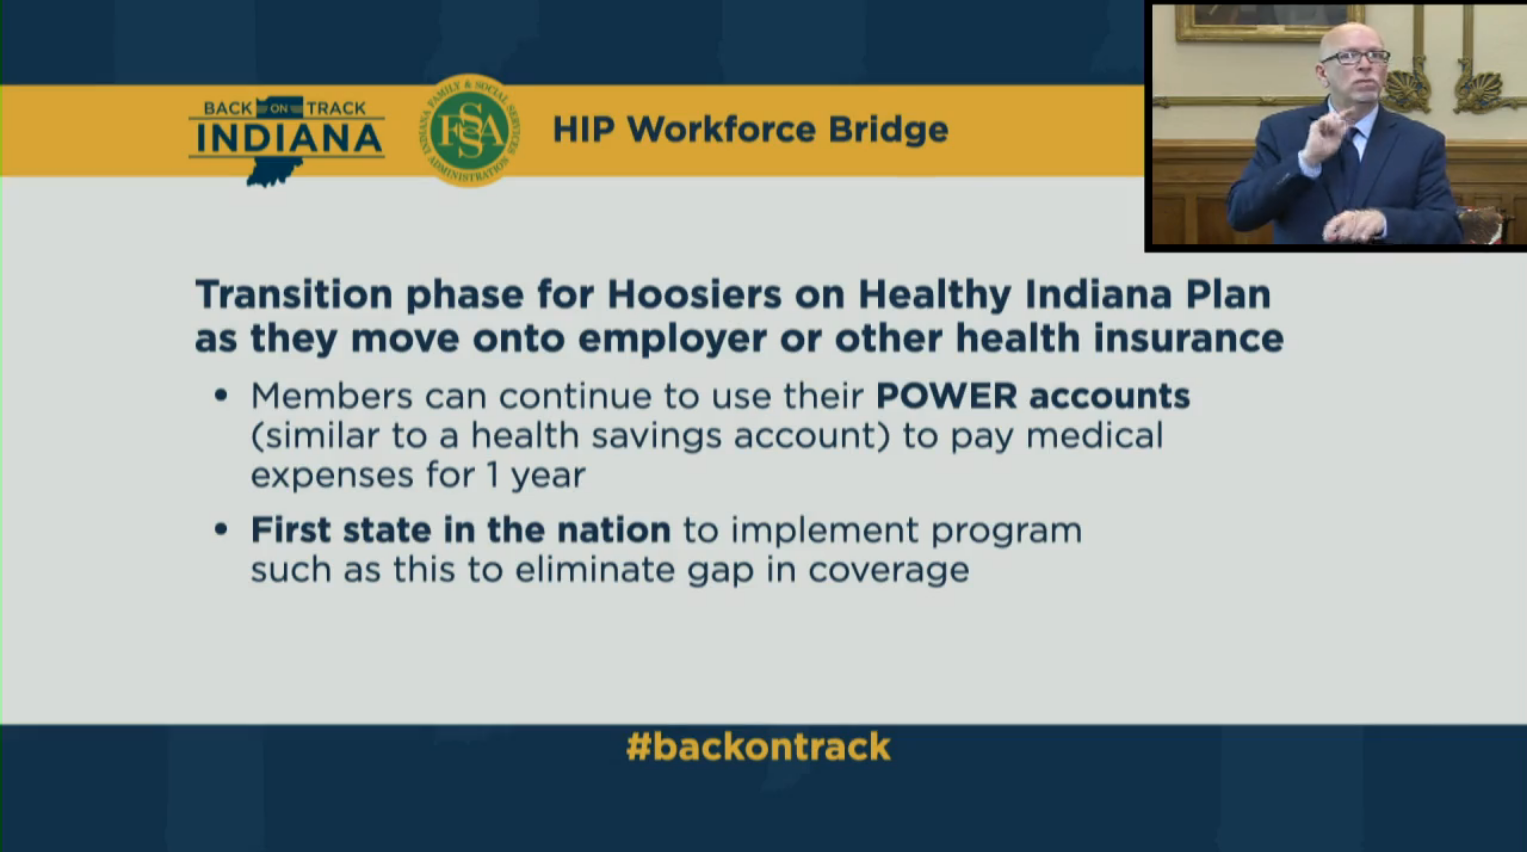 Helping Hoosiers with Healthcare Expenses